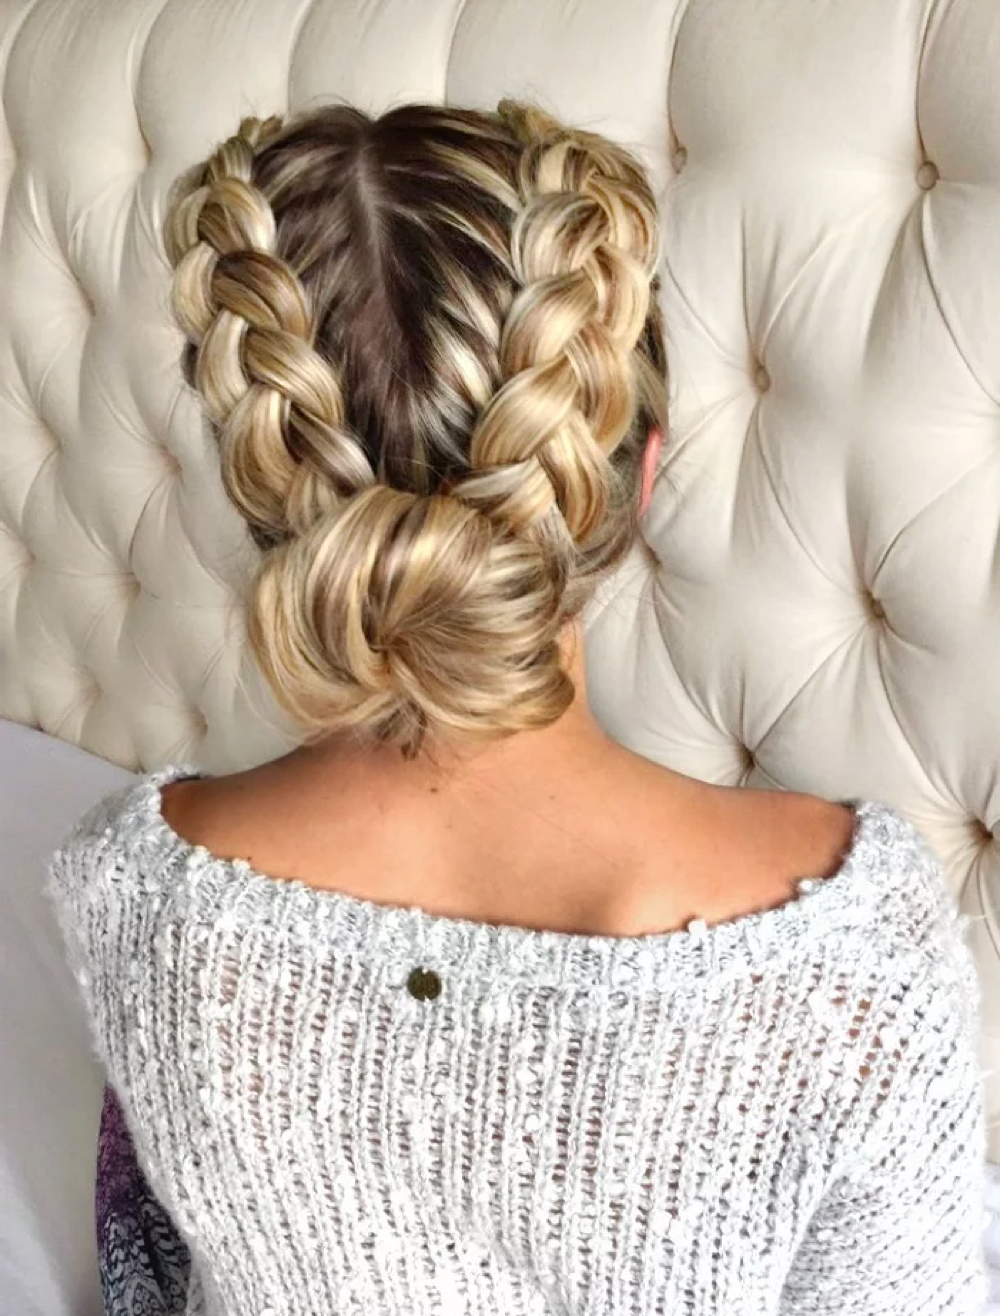 29 Gorgeous Braided Updo Ideas For 2019 With Recent Side Bun Twined Prom Hairstyles With A Braid (Gallery 6 of 20)